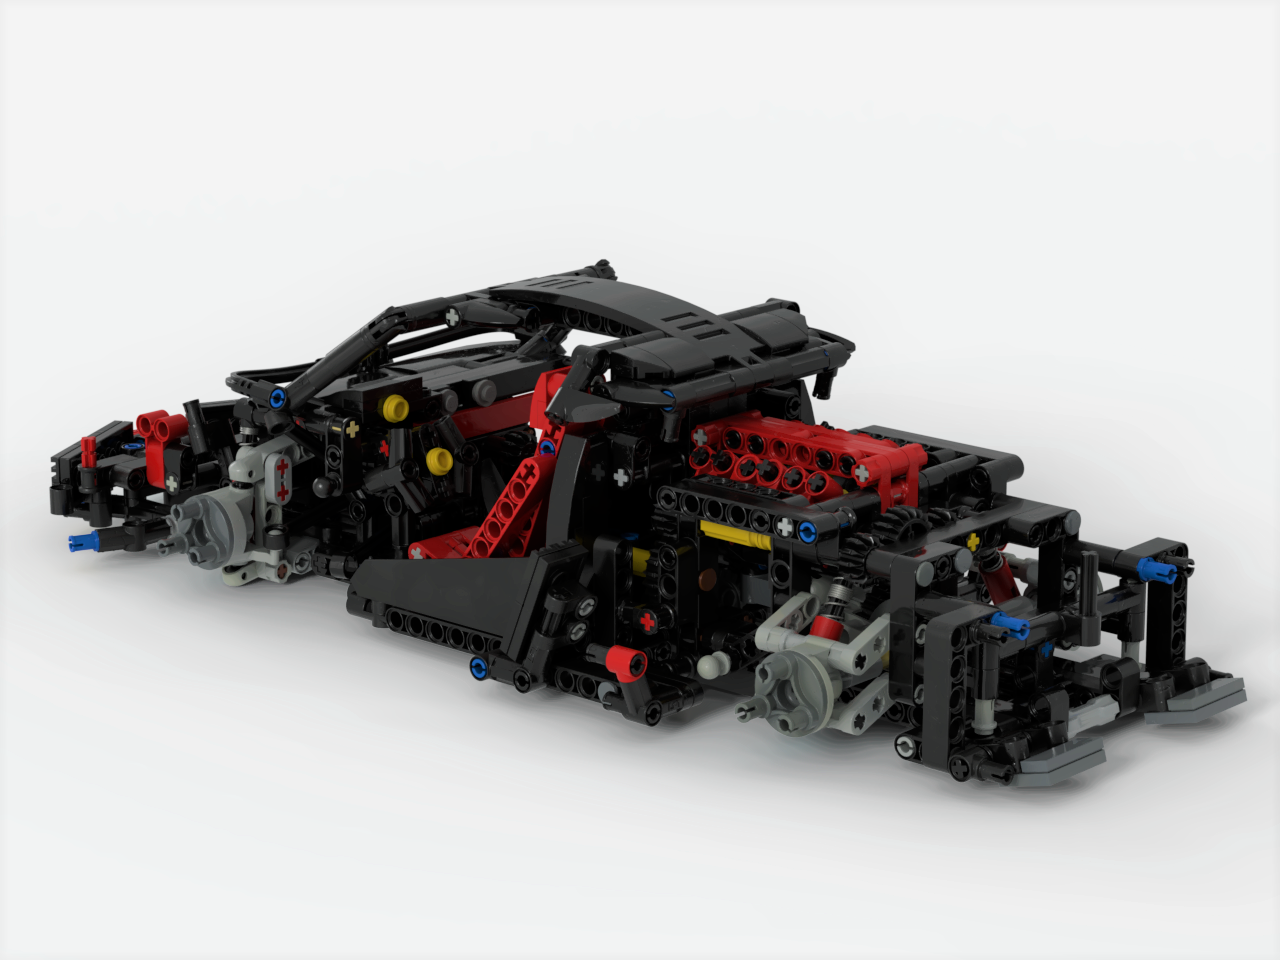 Ferrari%20Laferrari%20complete%20chassis%20render%20rear%20side%20view.png